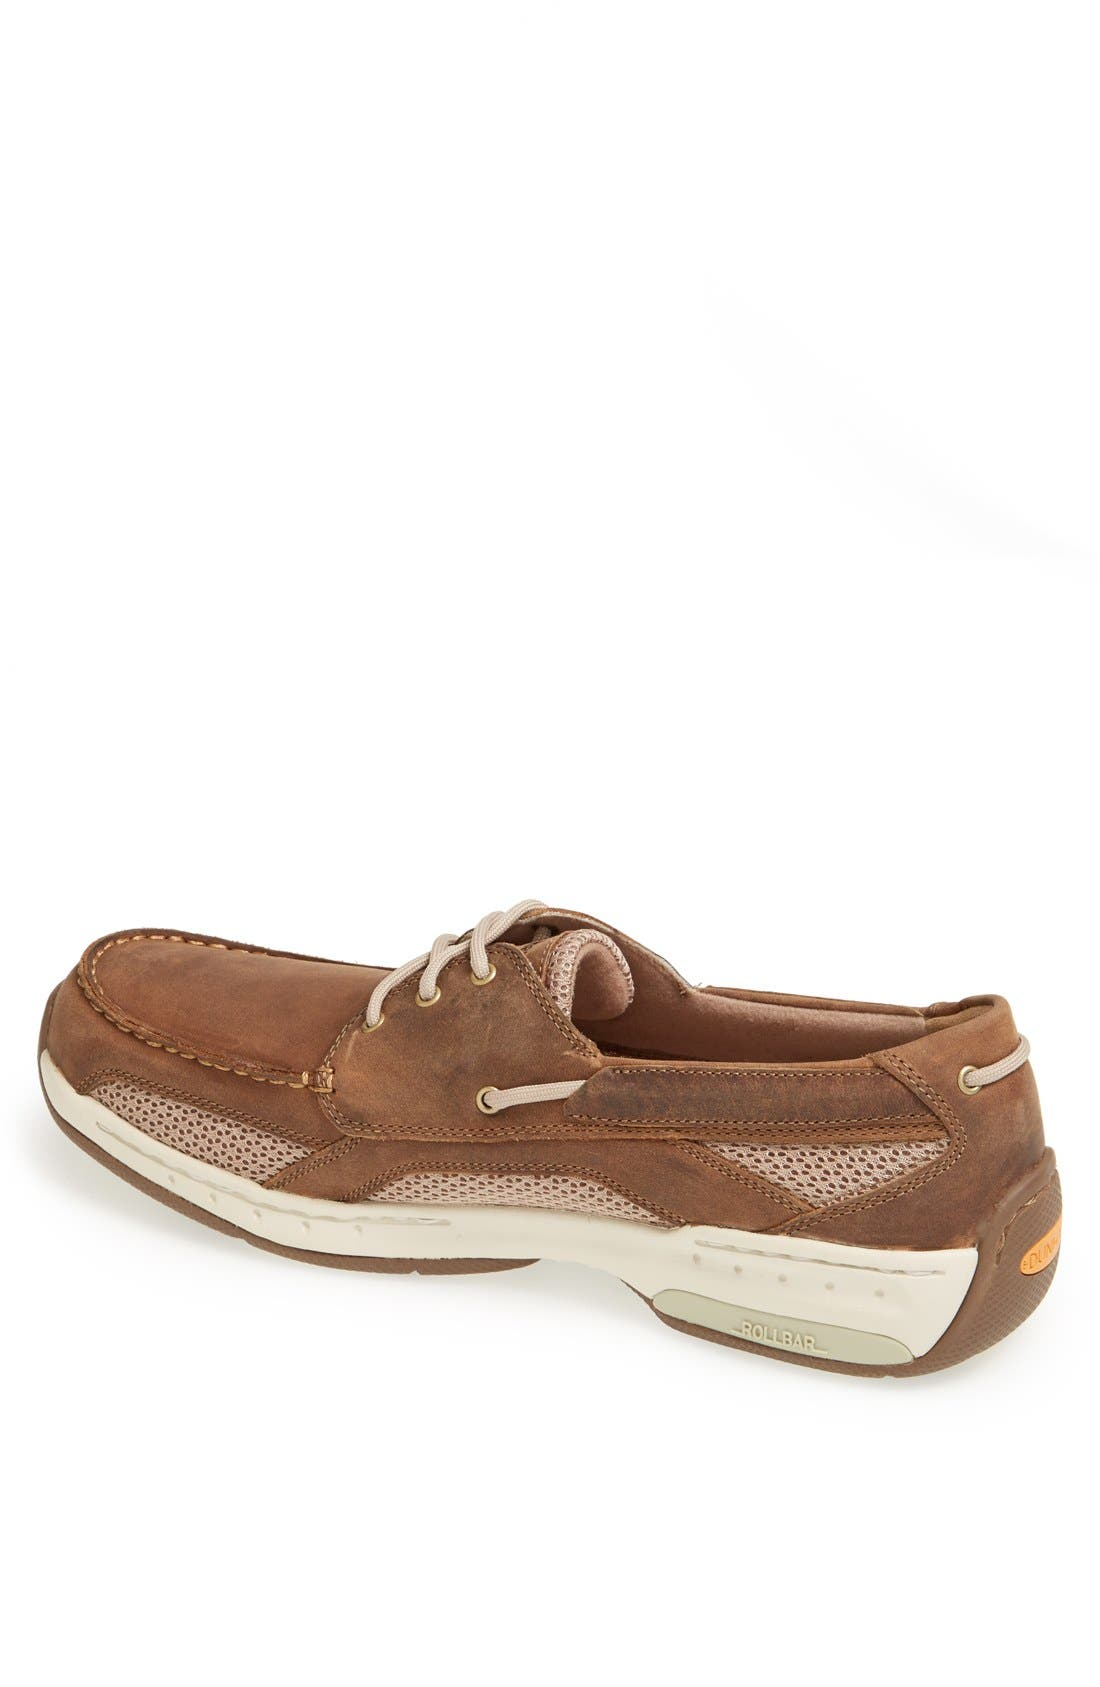 'Captain' Boat Shoe,                             Alternate thumbnail 4, color,                             TAN